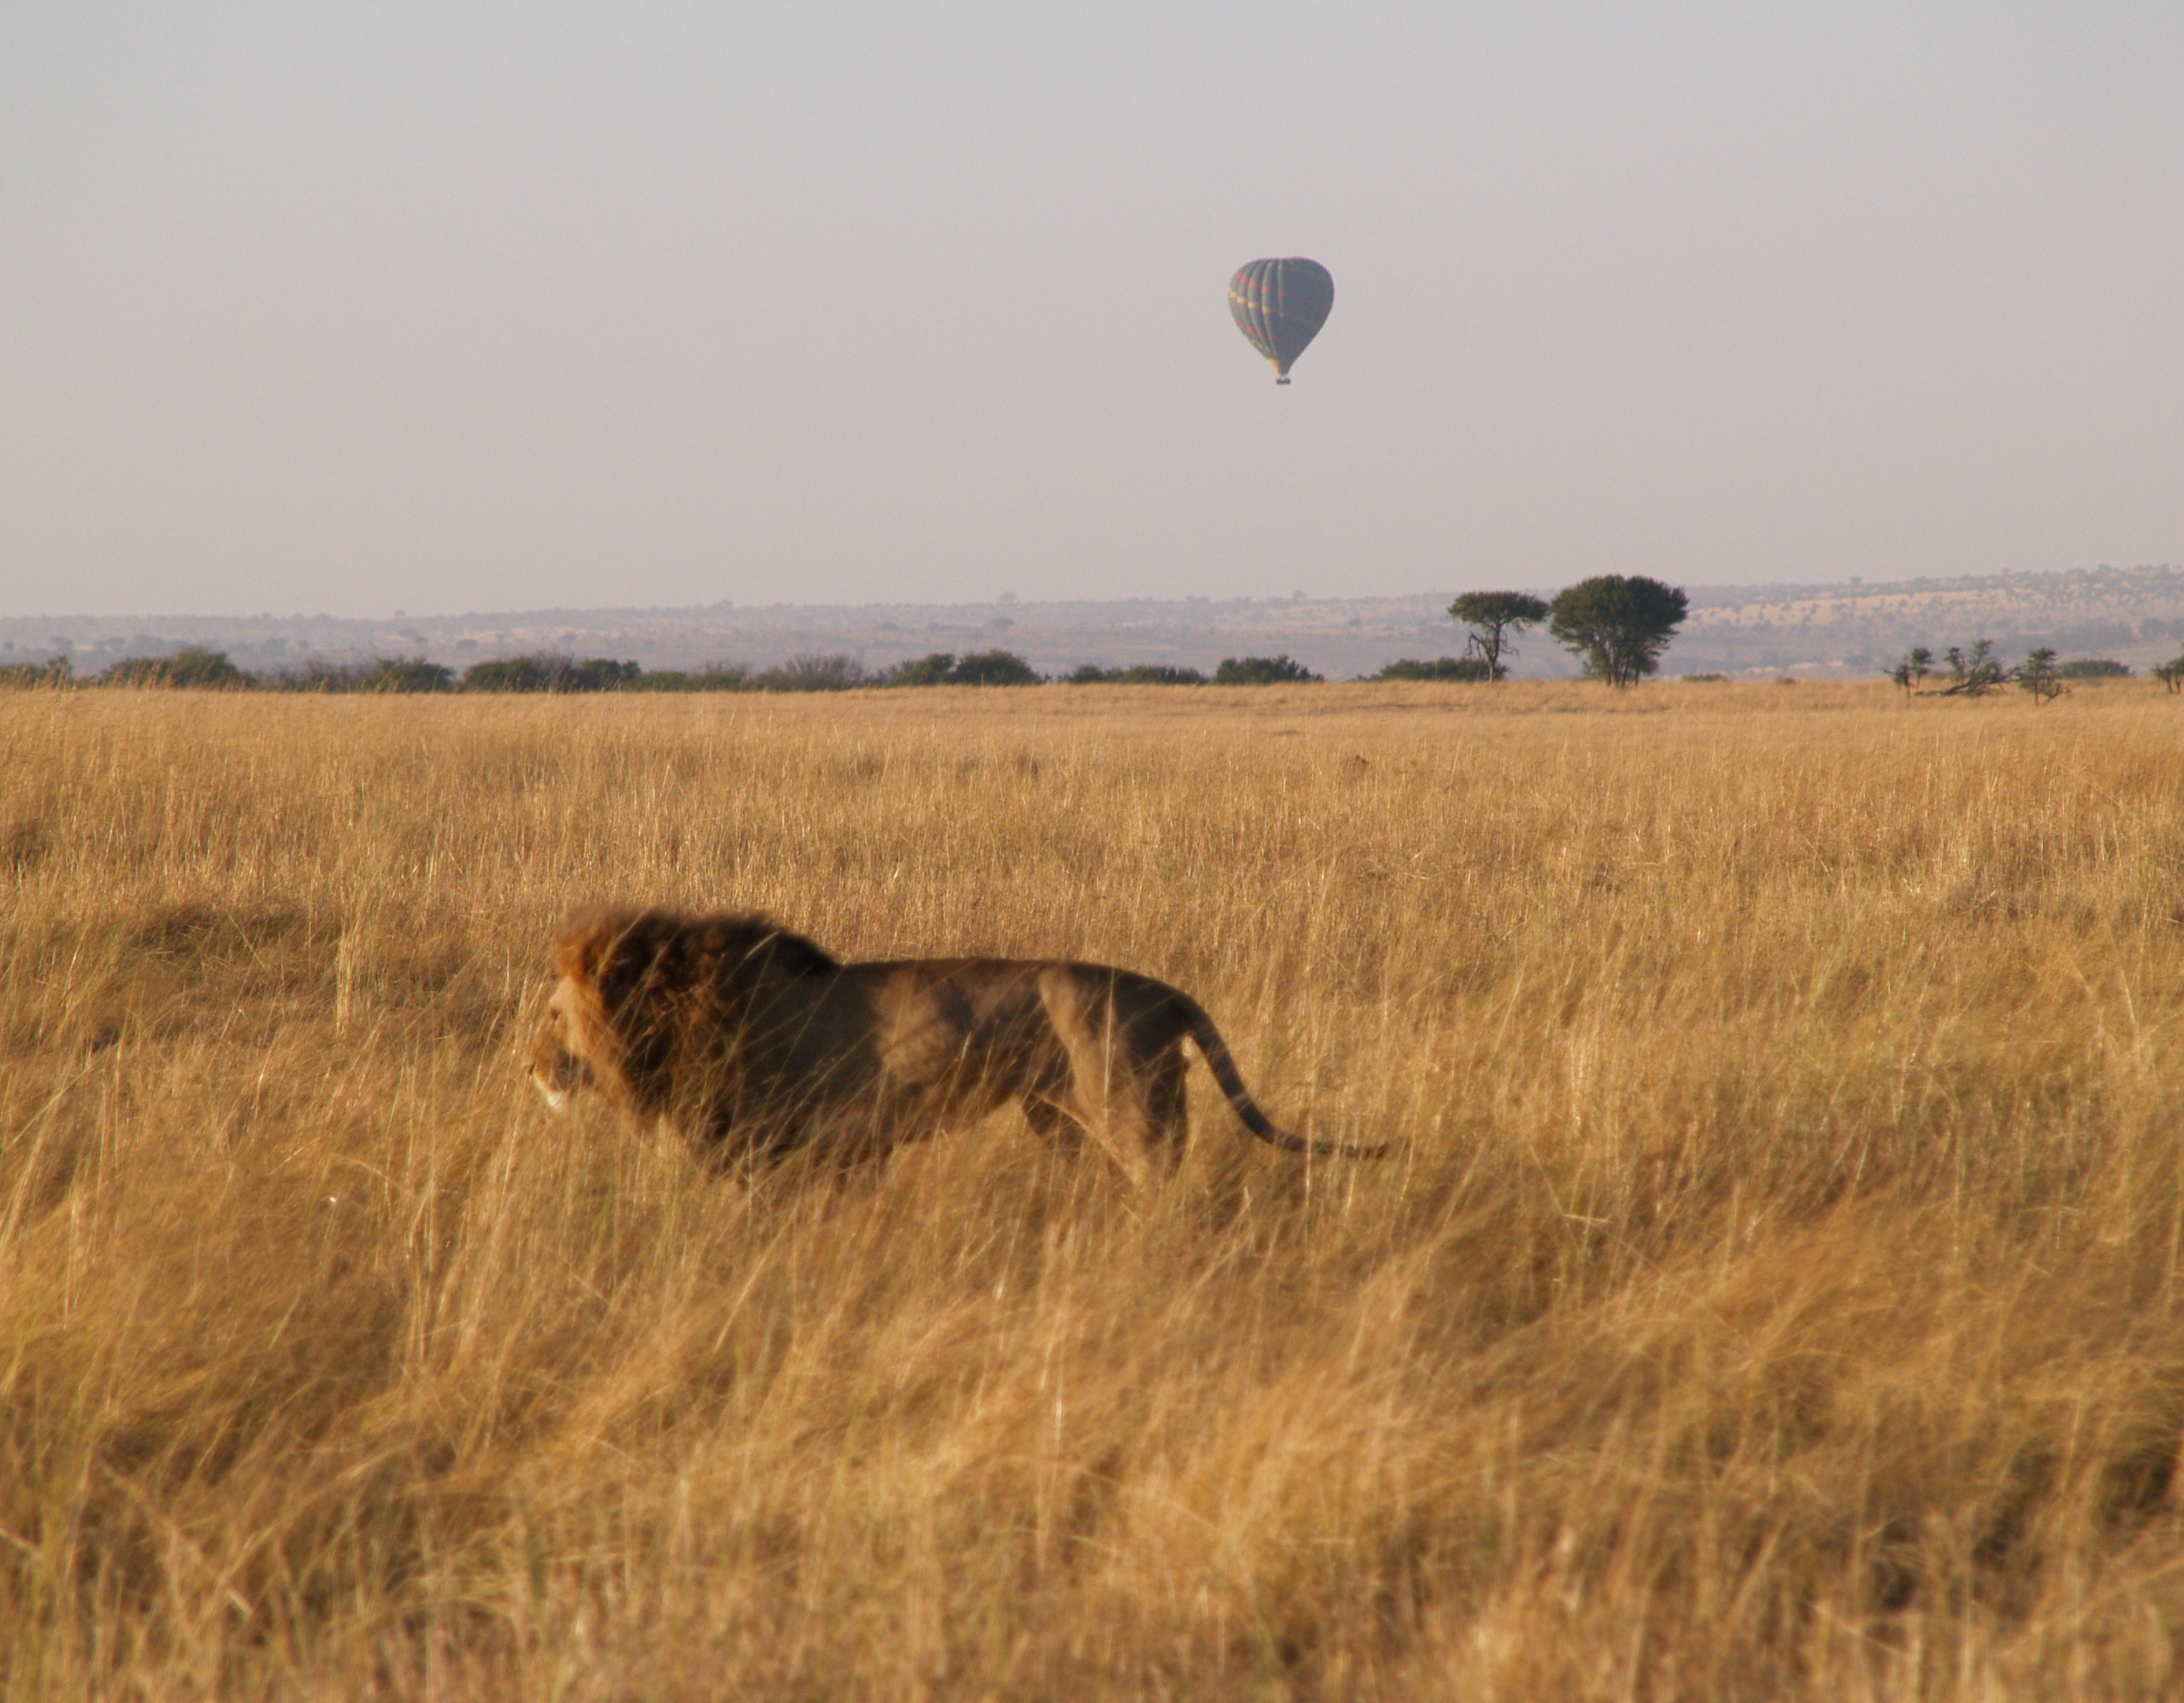 on the move, I was lucky to get this shot, on several mornings we saw several balloons going along the Mara River